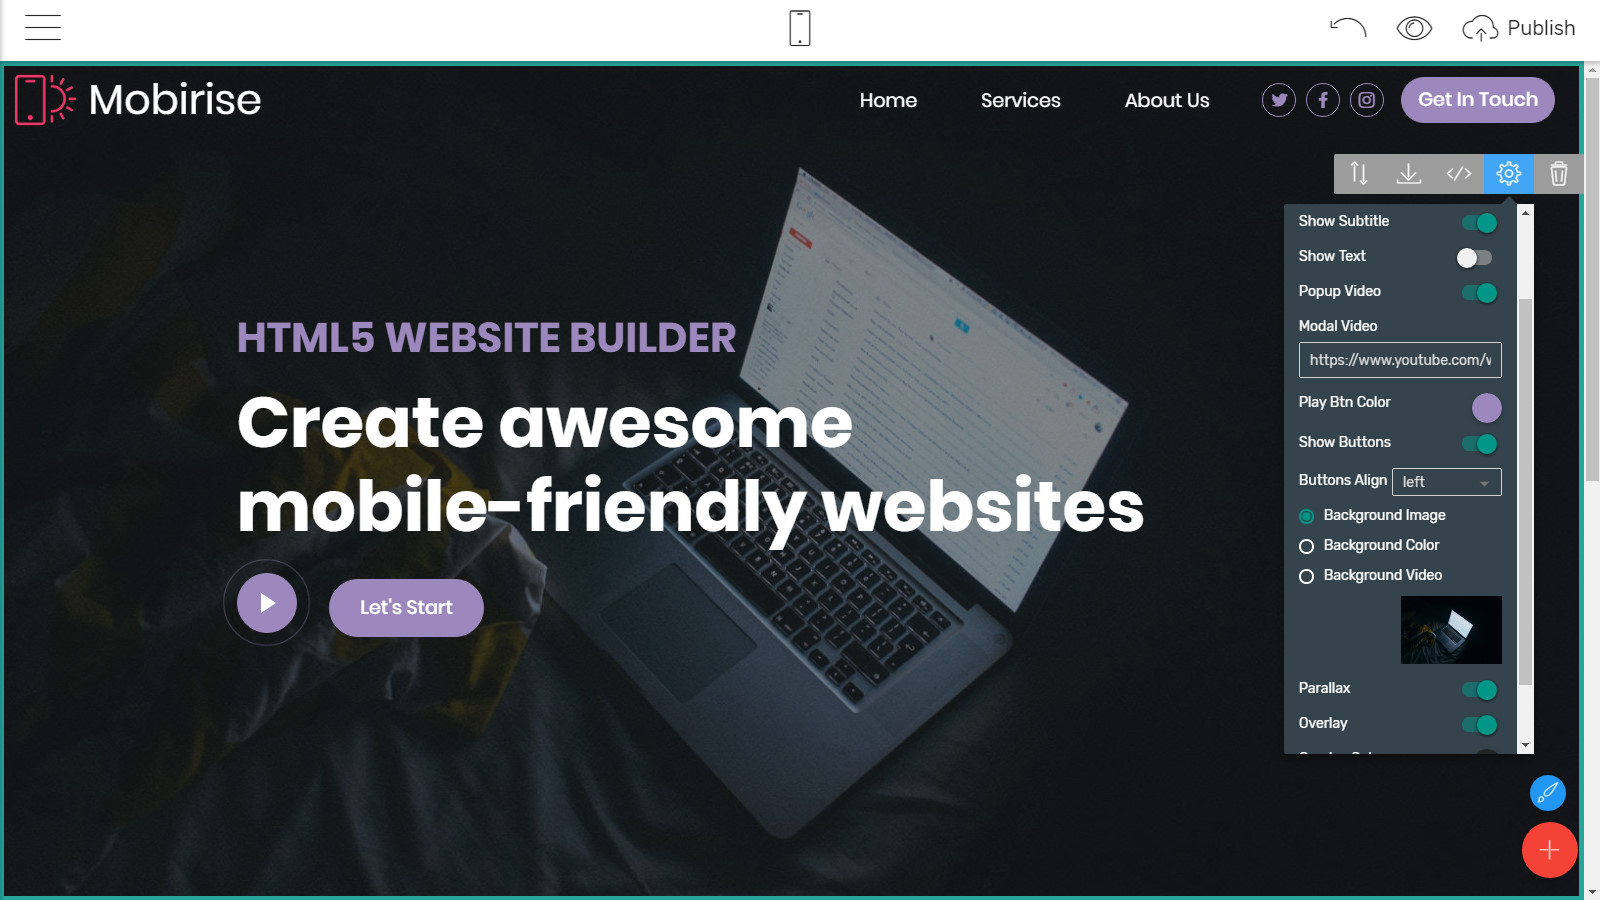 mobile-friendly webpage layouts